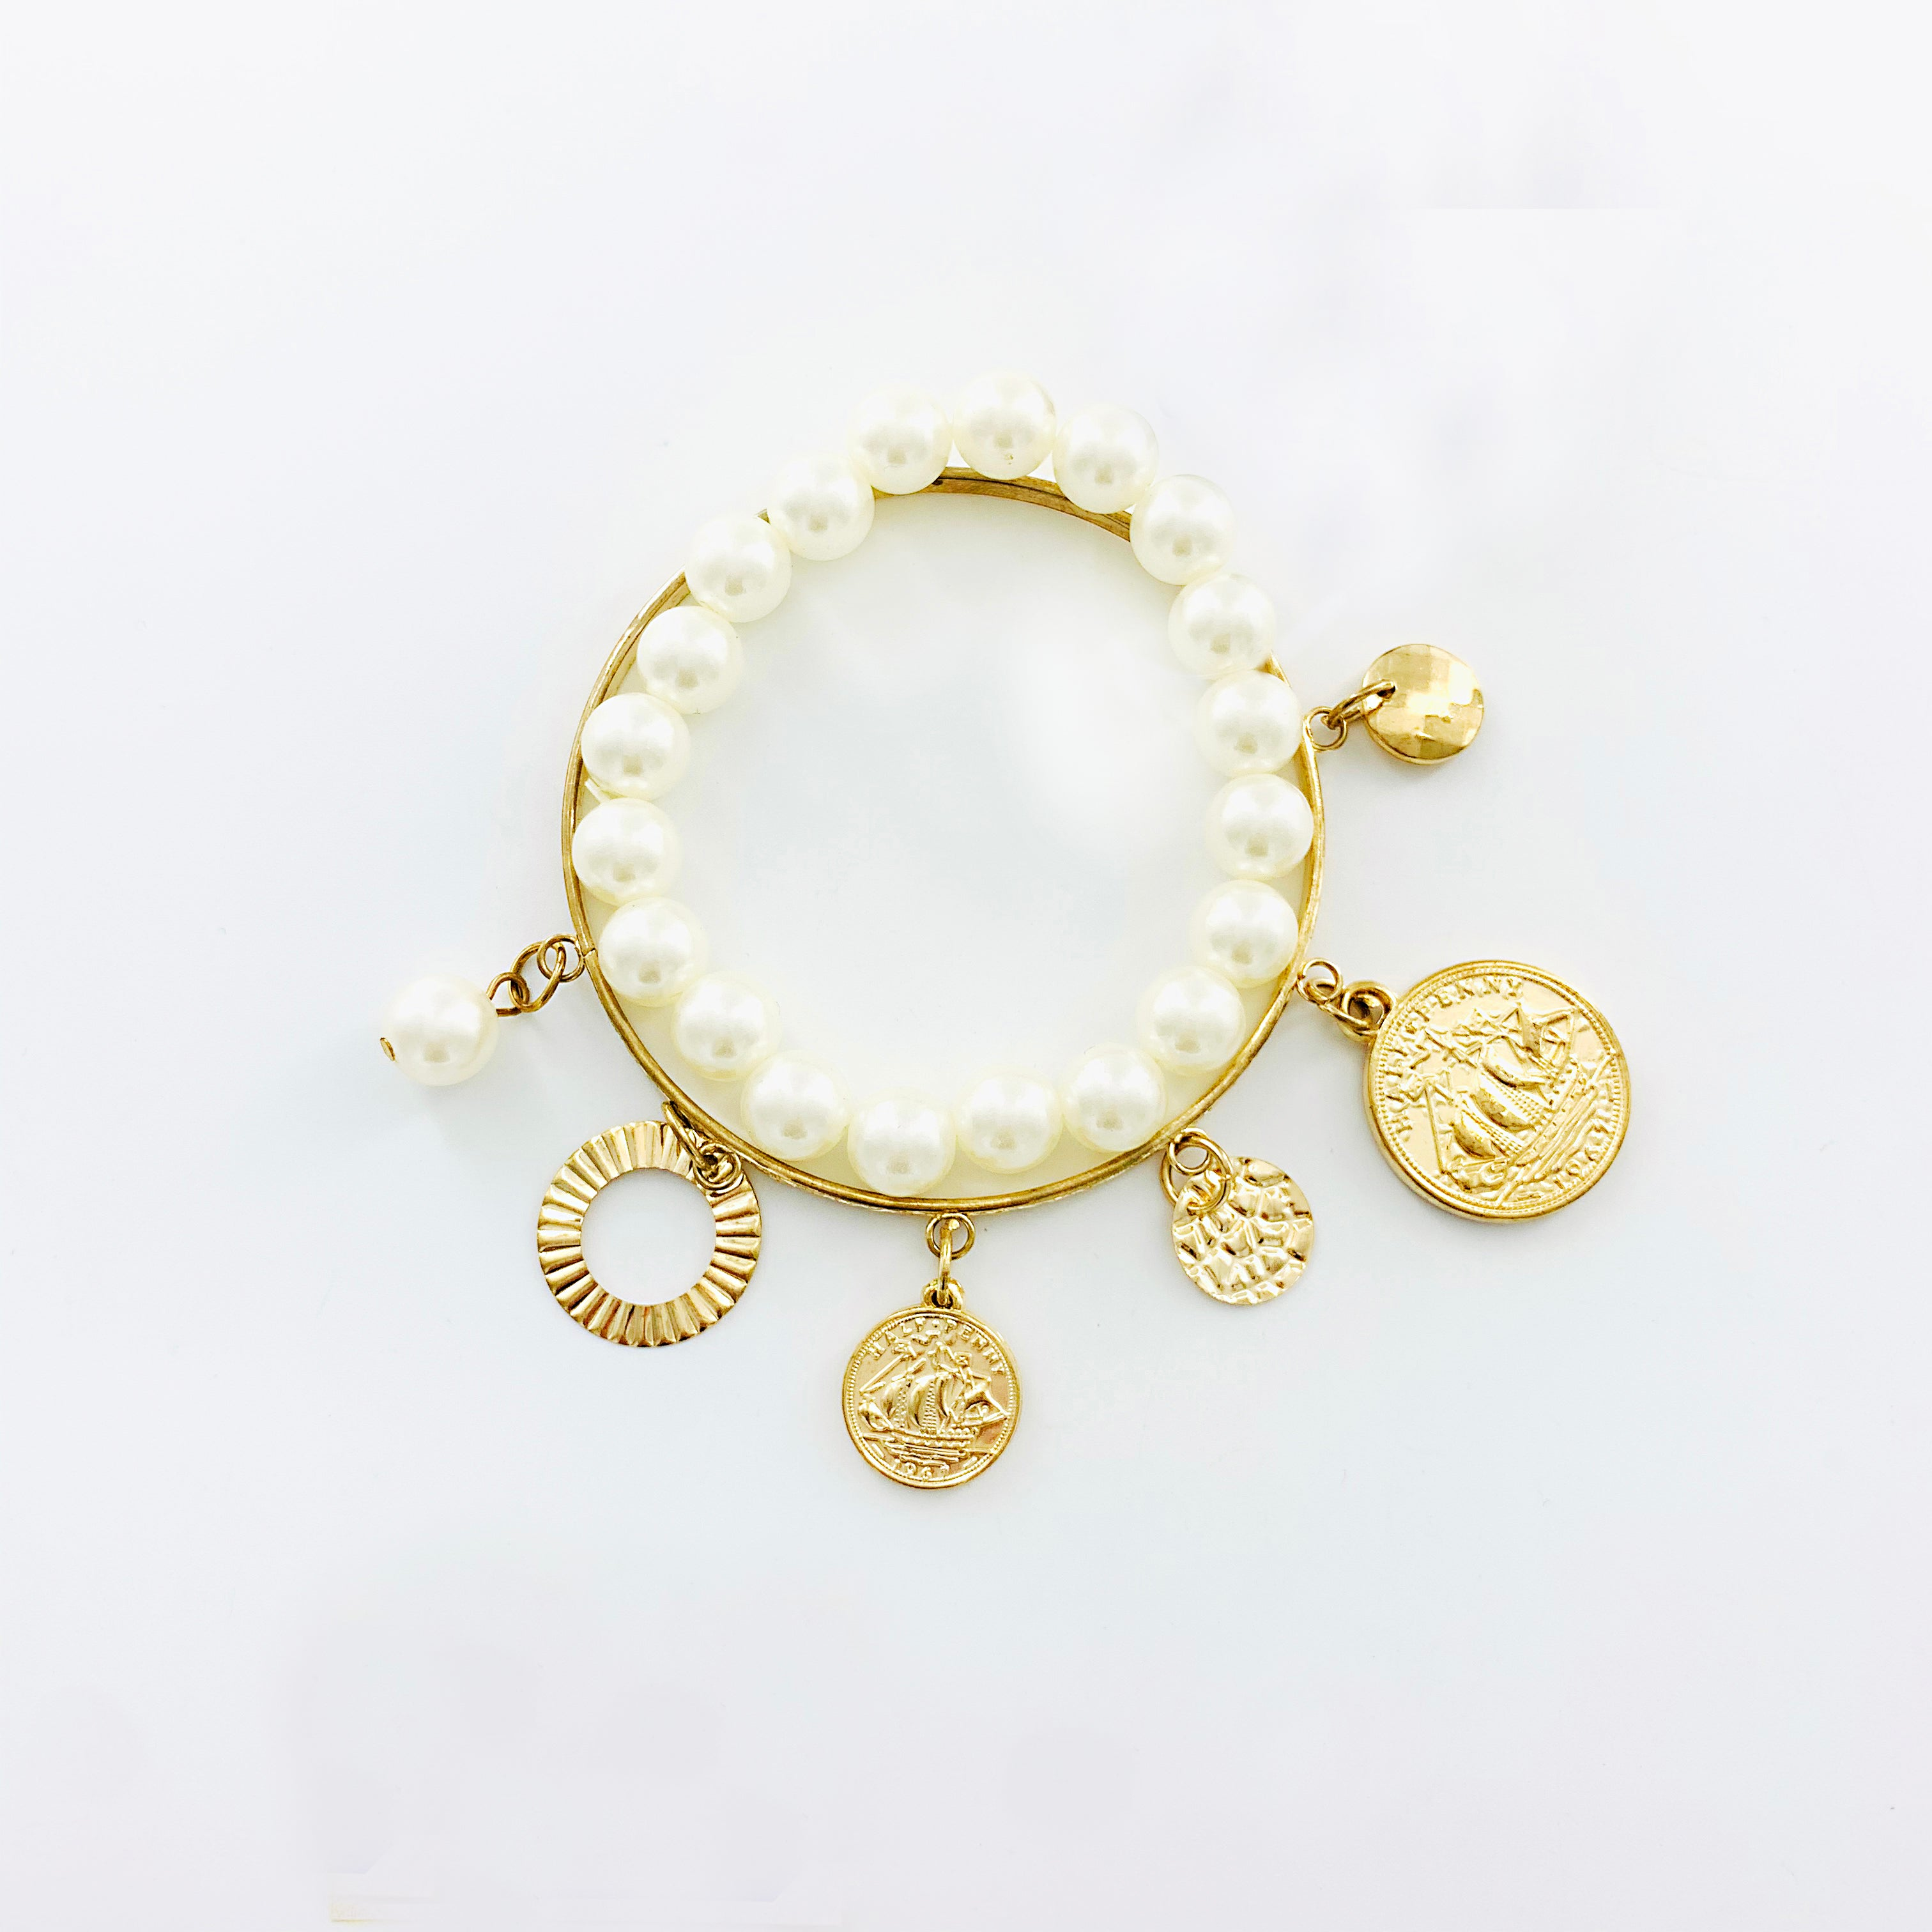 Pearl and gold bangle with gold coin charms - gold